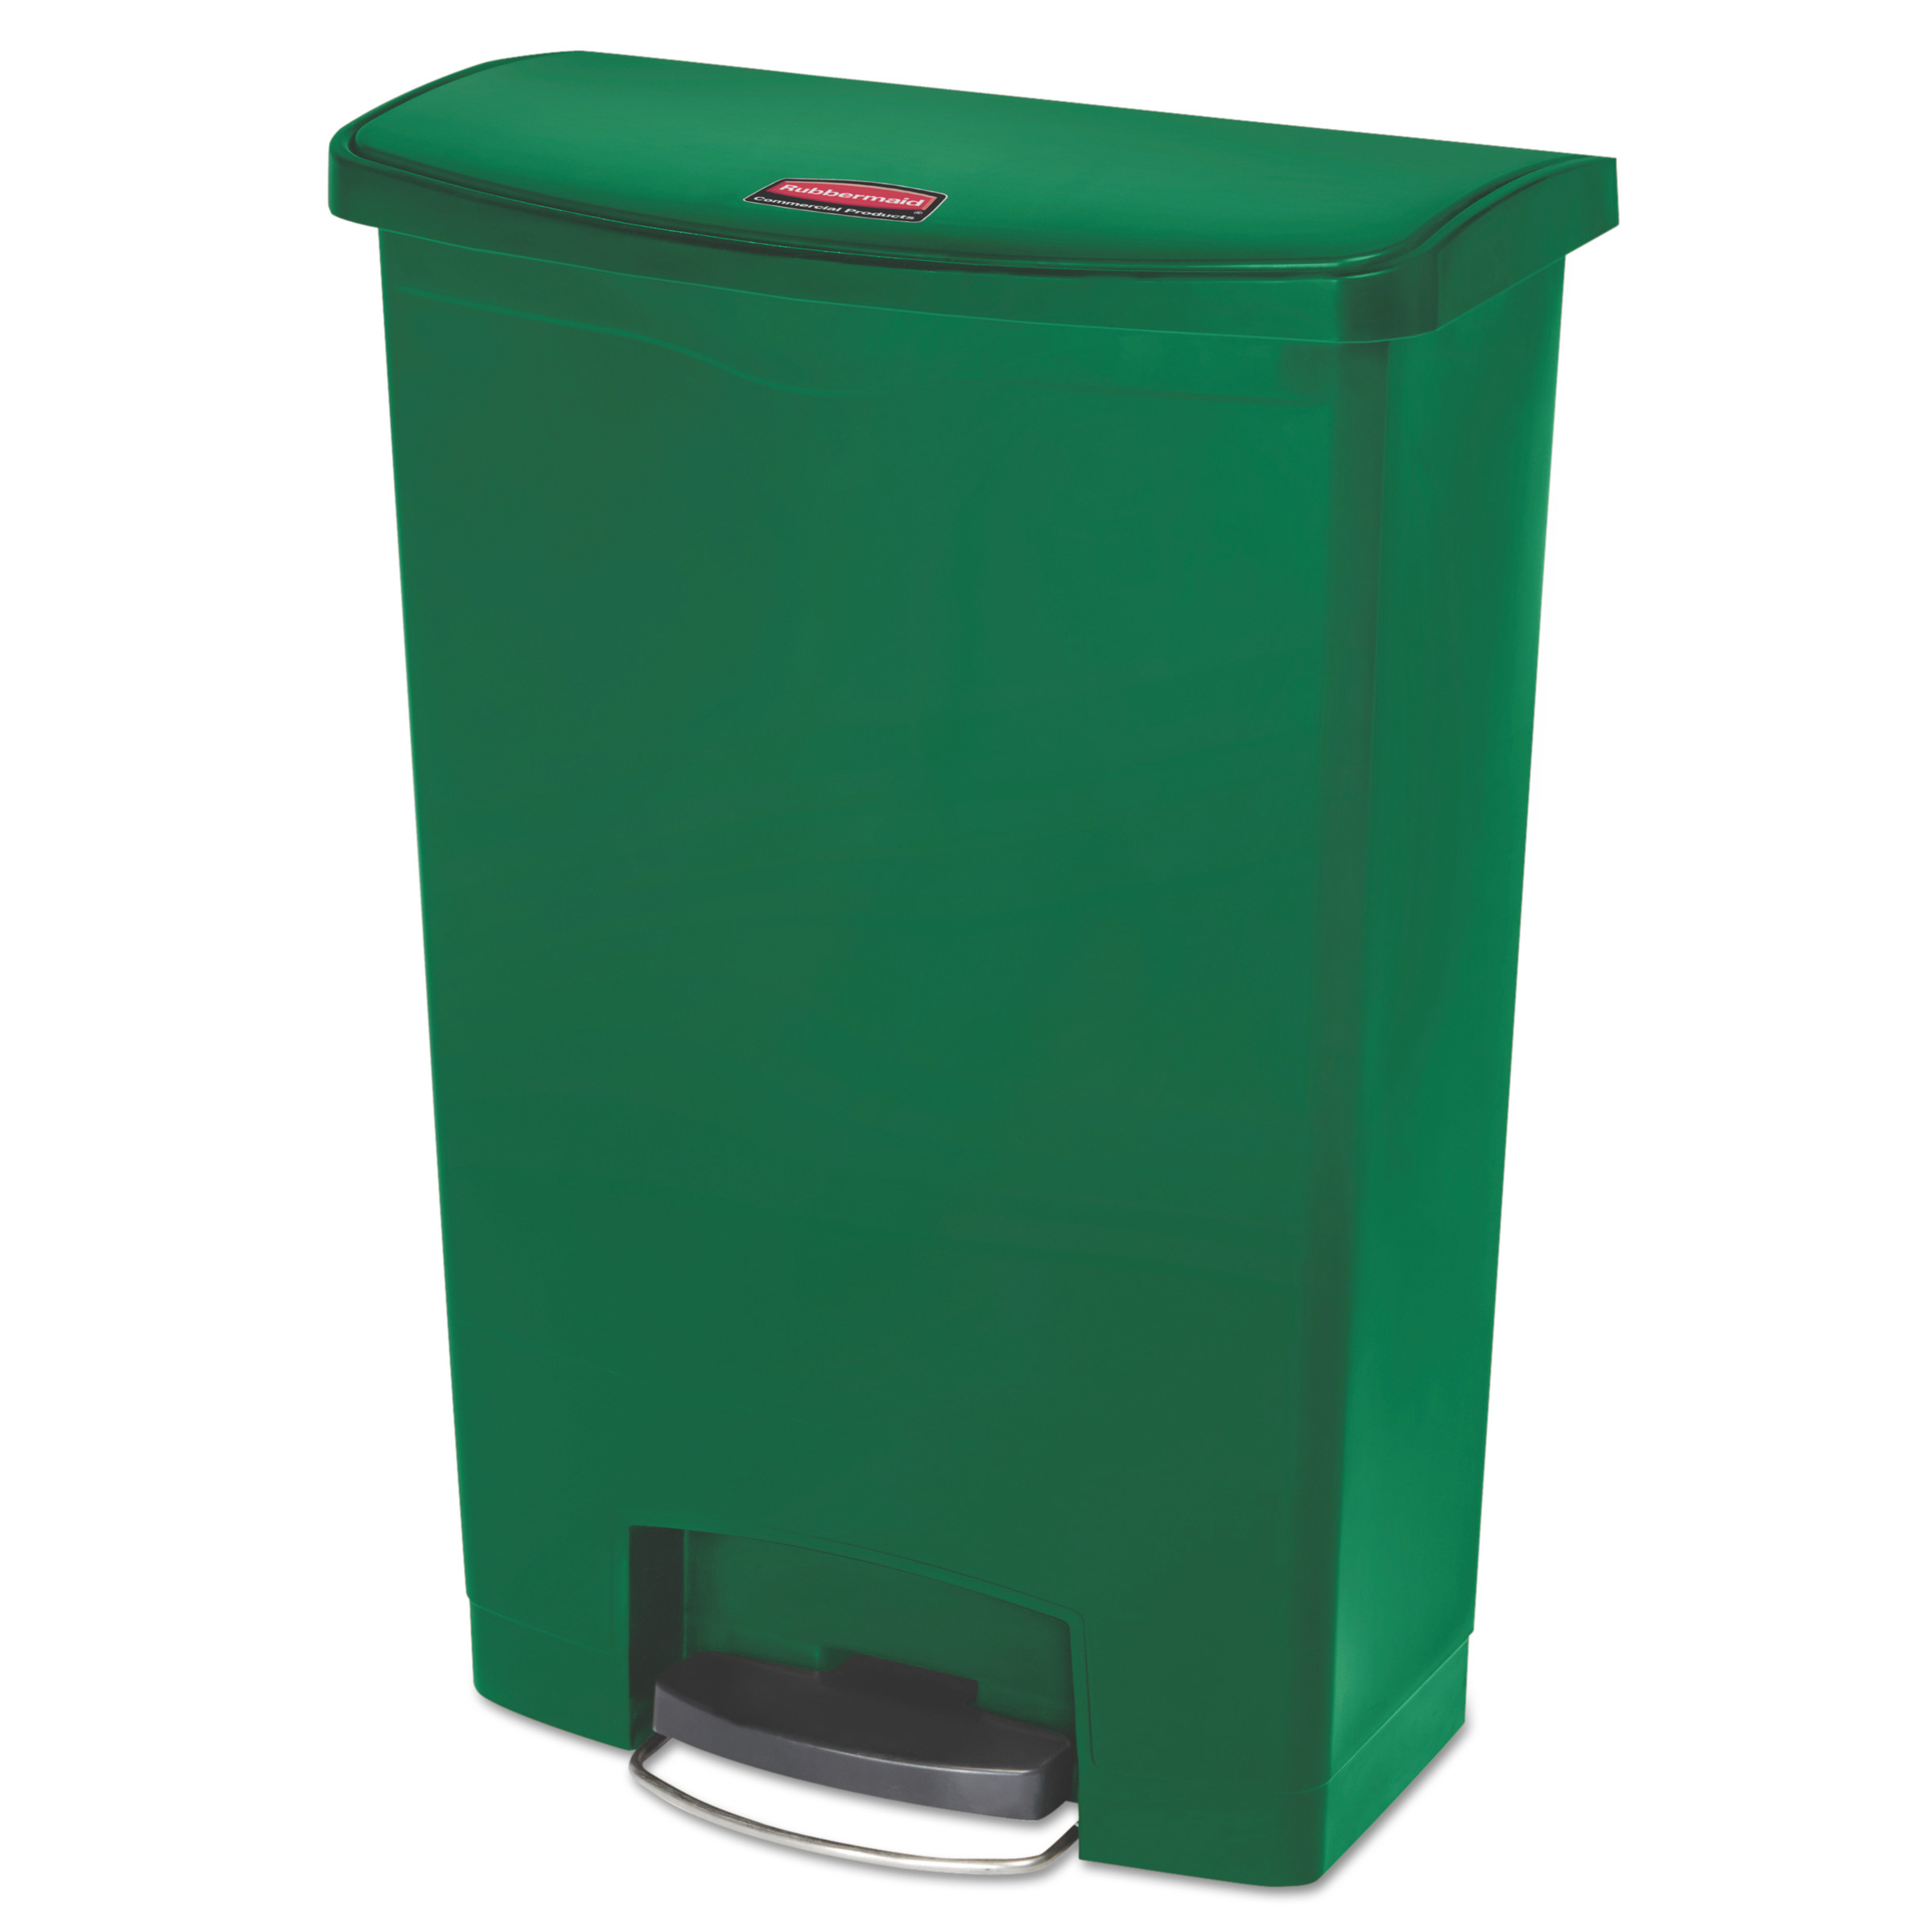 Rubbermaid Commercial Slim Jim Resin Step-On Container, Front Step Style, 24 gal, Green